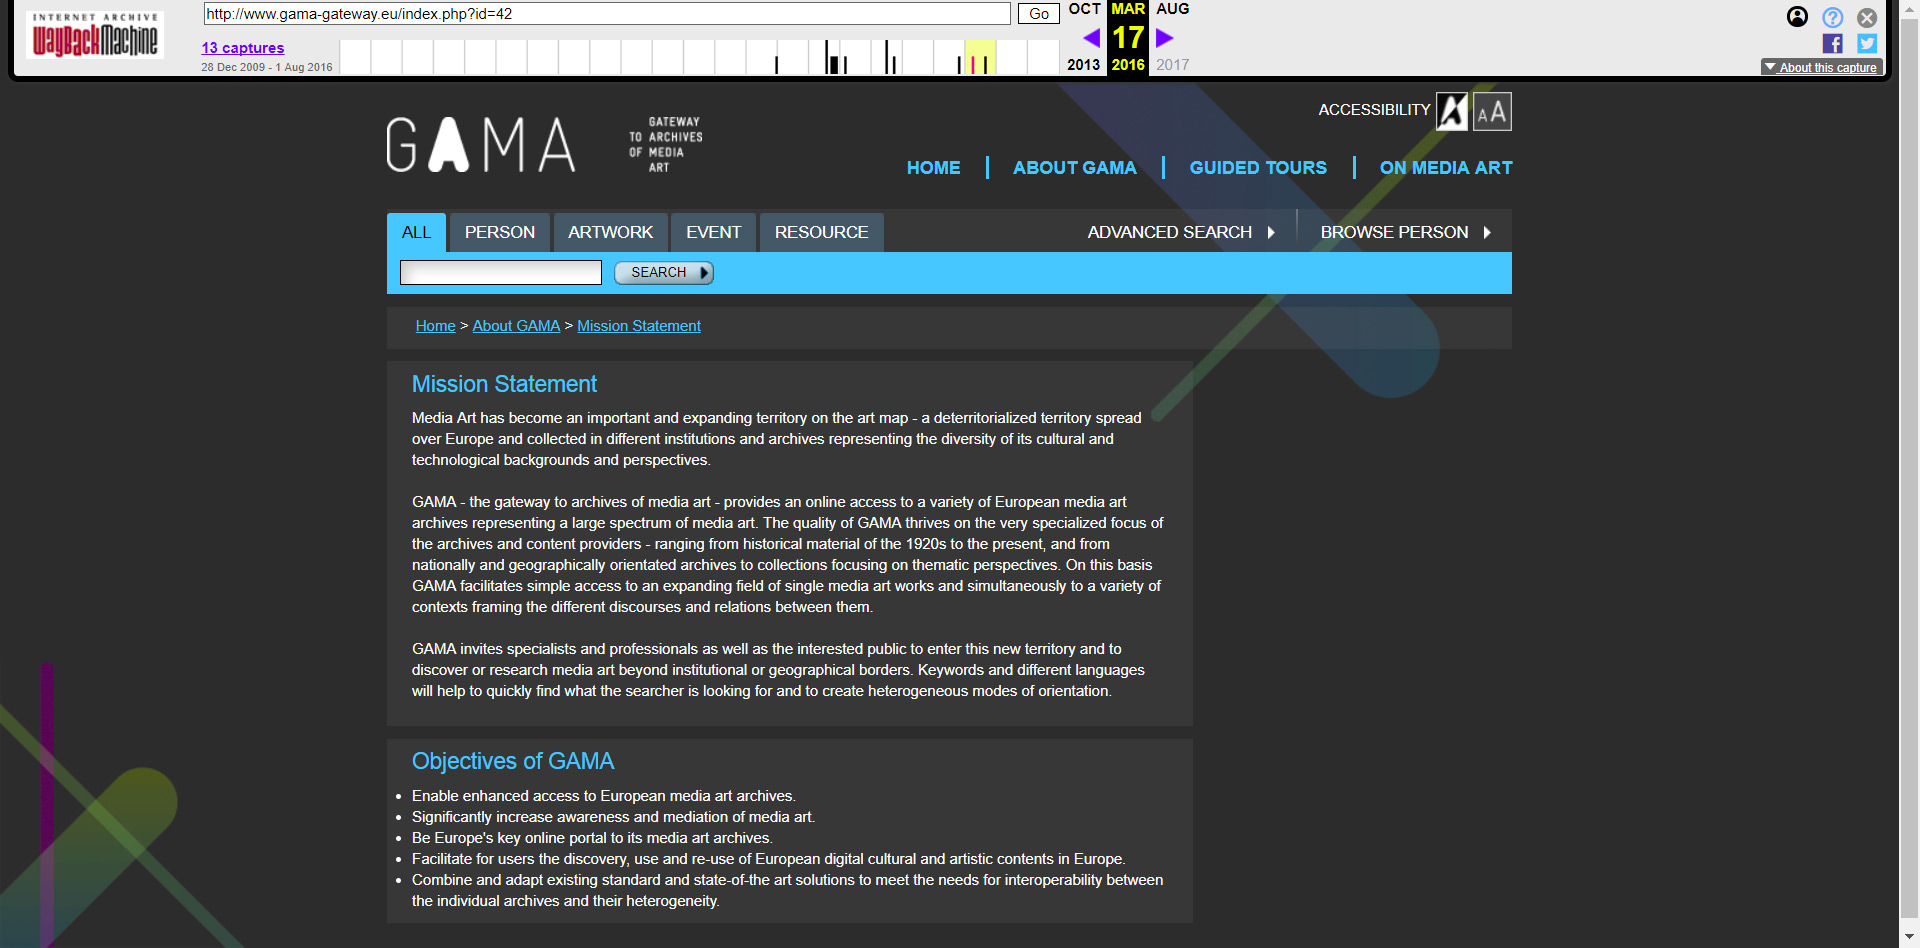 Screenshot of the GAMA portal interface provided by Internet Archive's Wayback Machine.